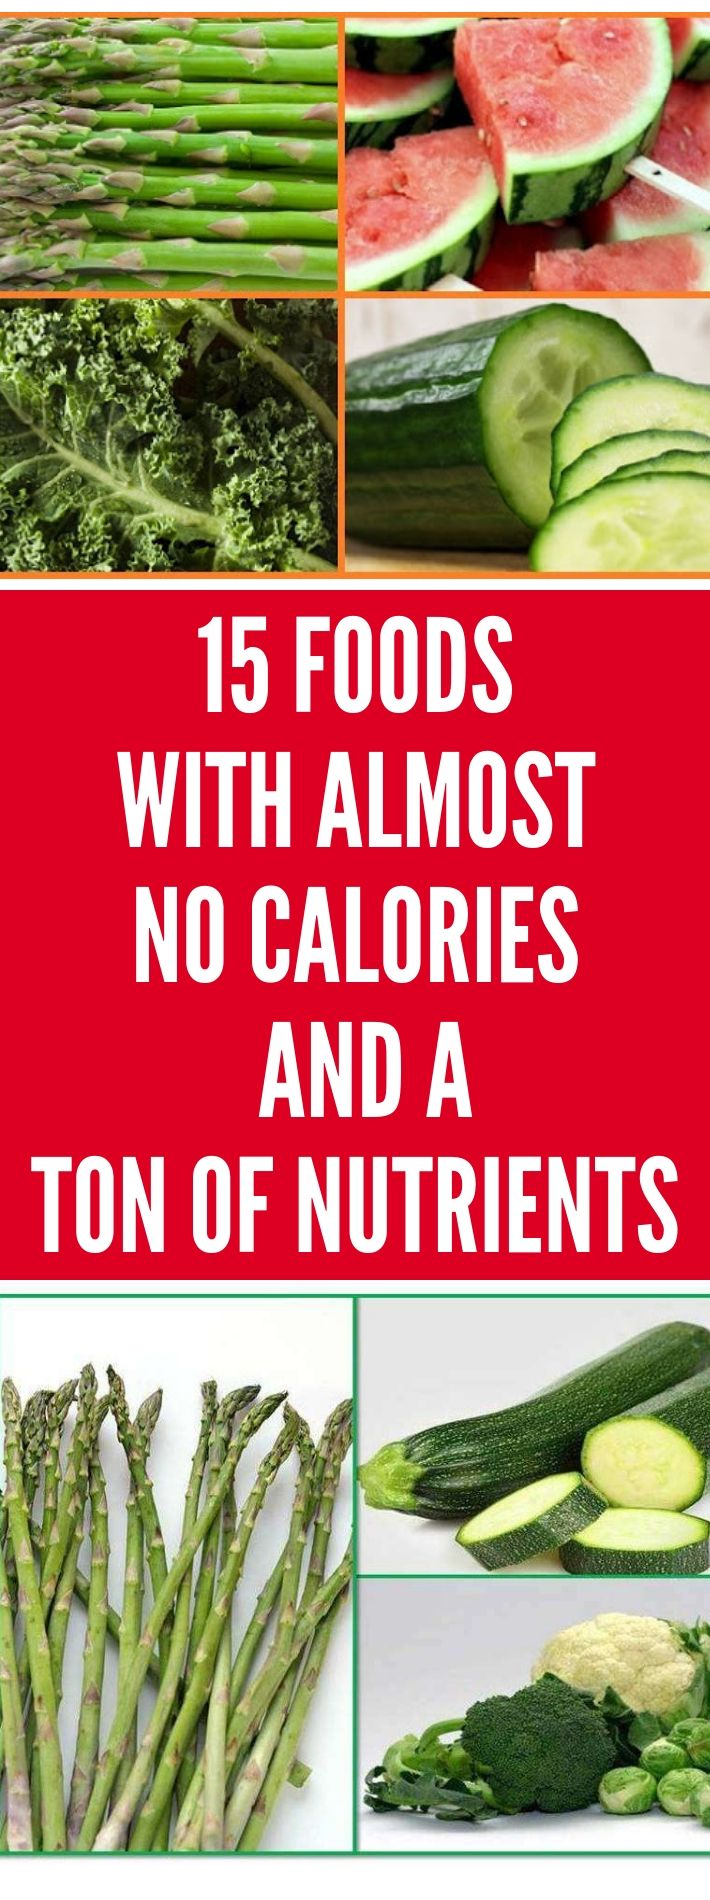 15 Foods With Almost No Calories and a Ton of Nutrients. Try This.